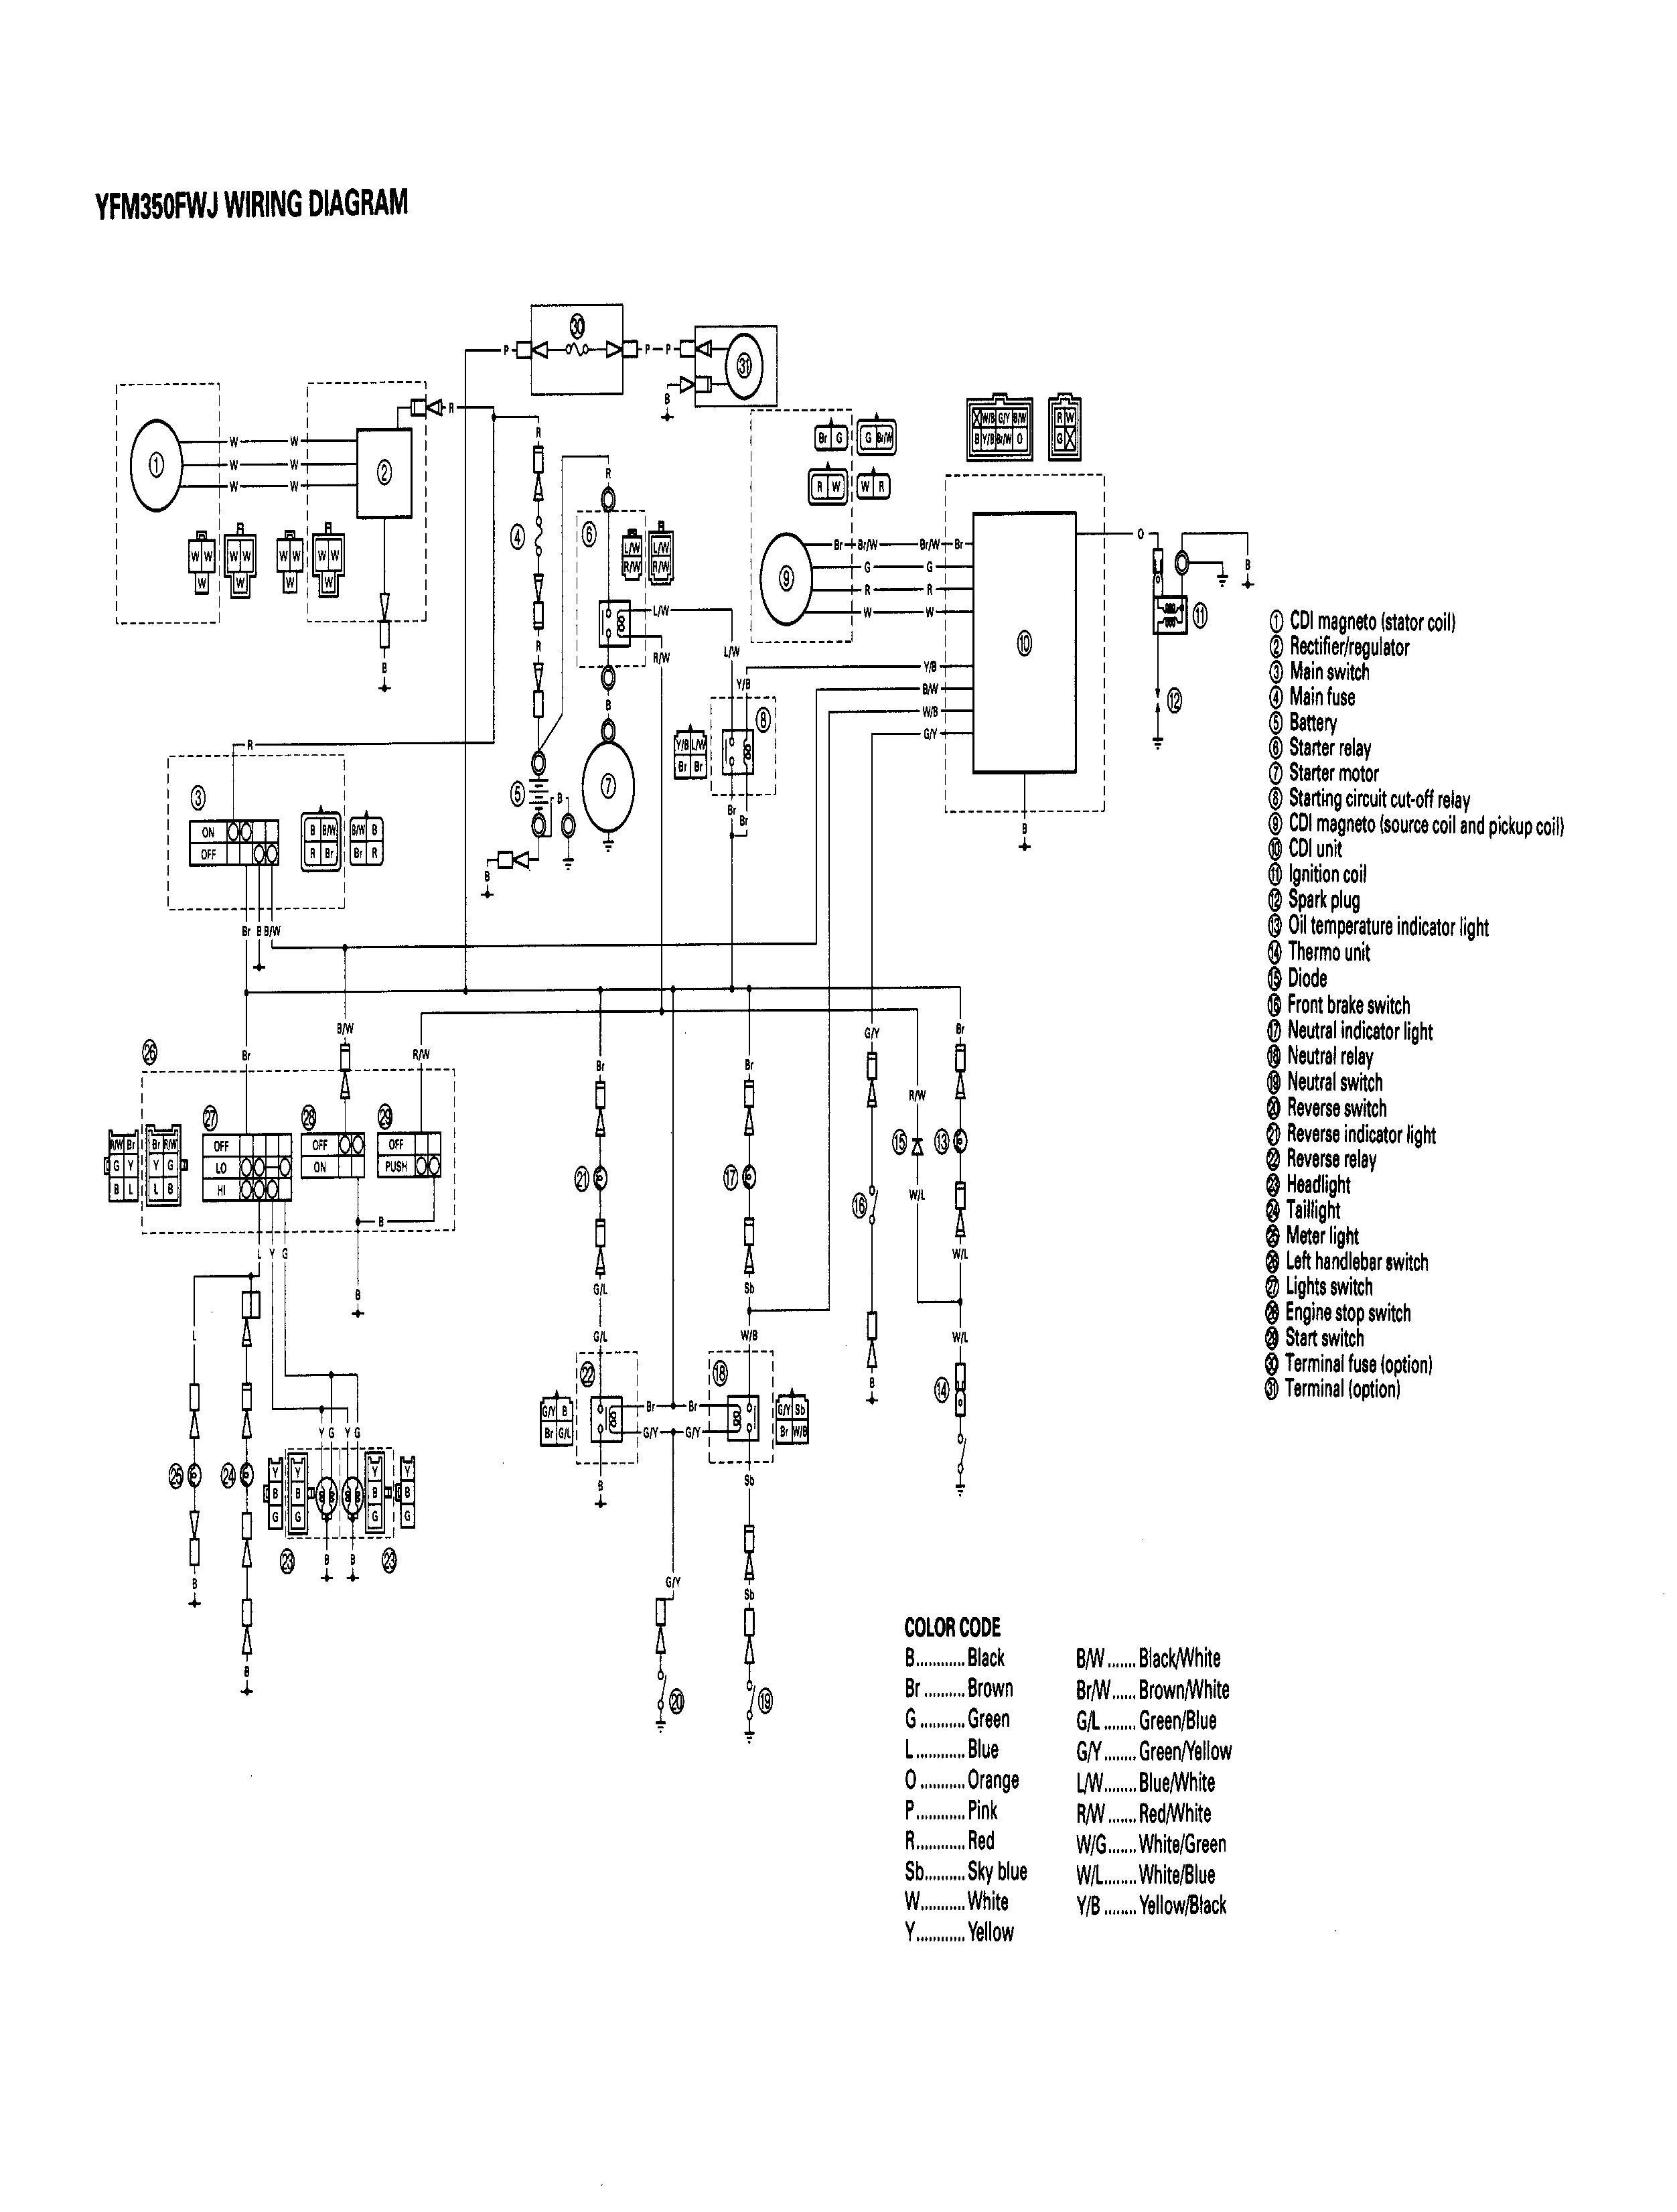 Old Box Fan Bedradings Schema Auto Electrical Wiring Diagram 1980 Fiat Spider 1996 Bigbear 350 4x4